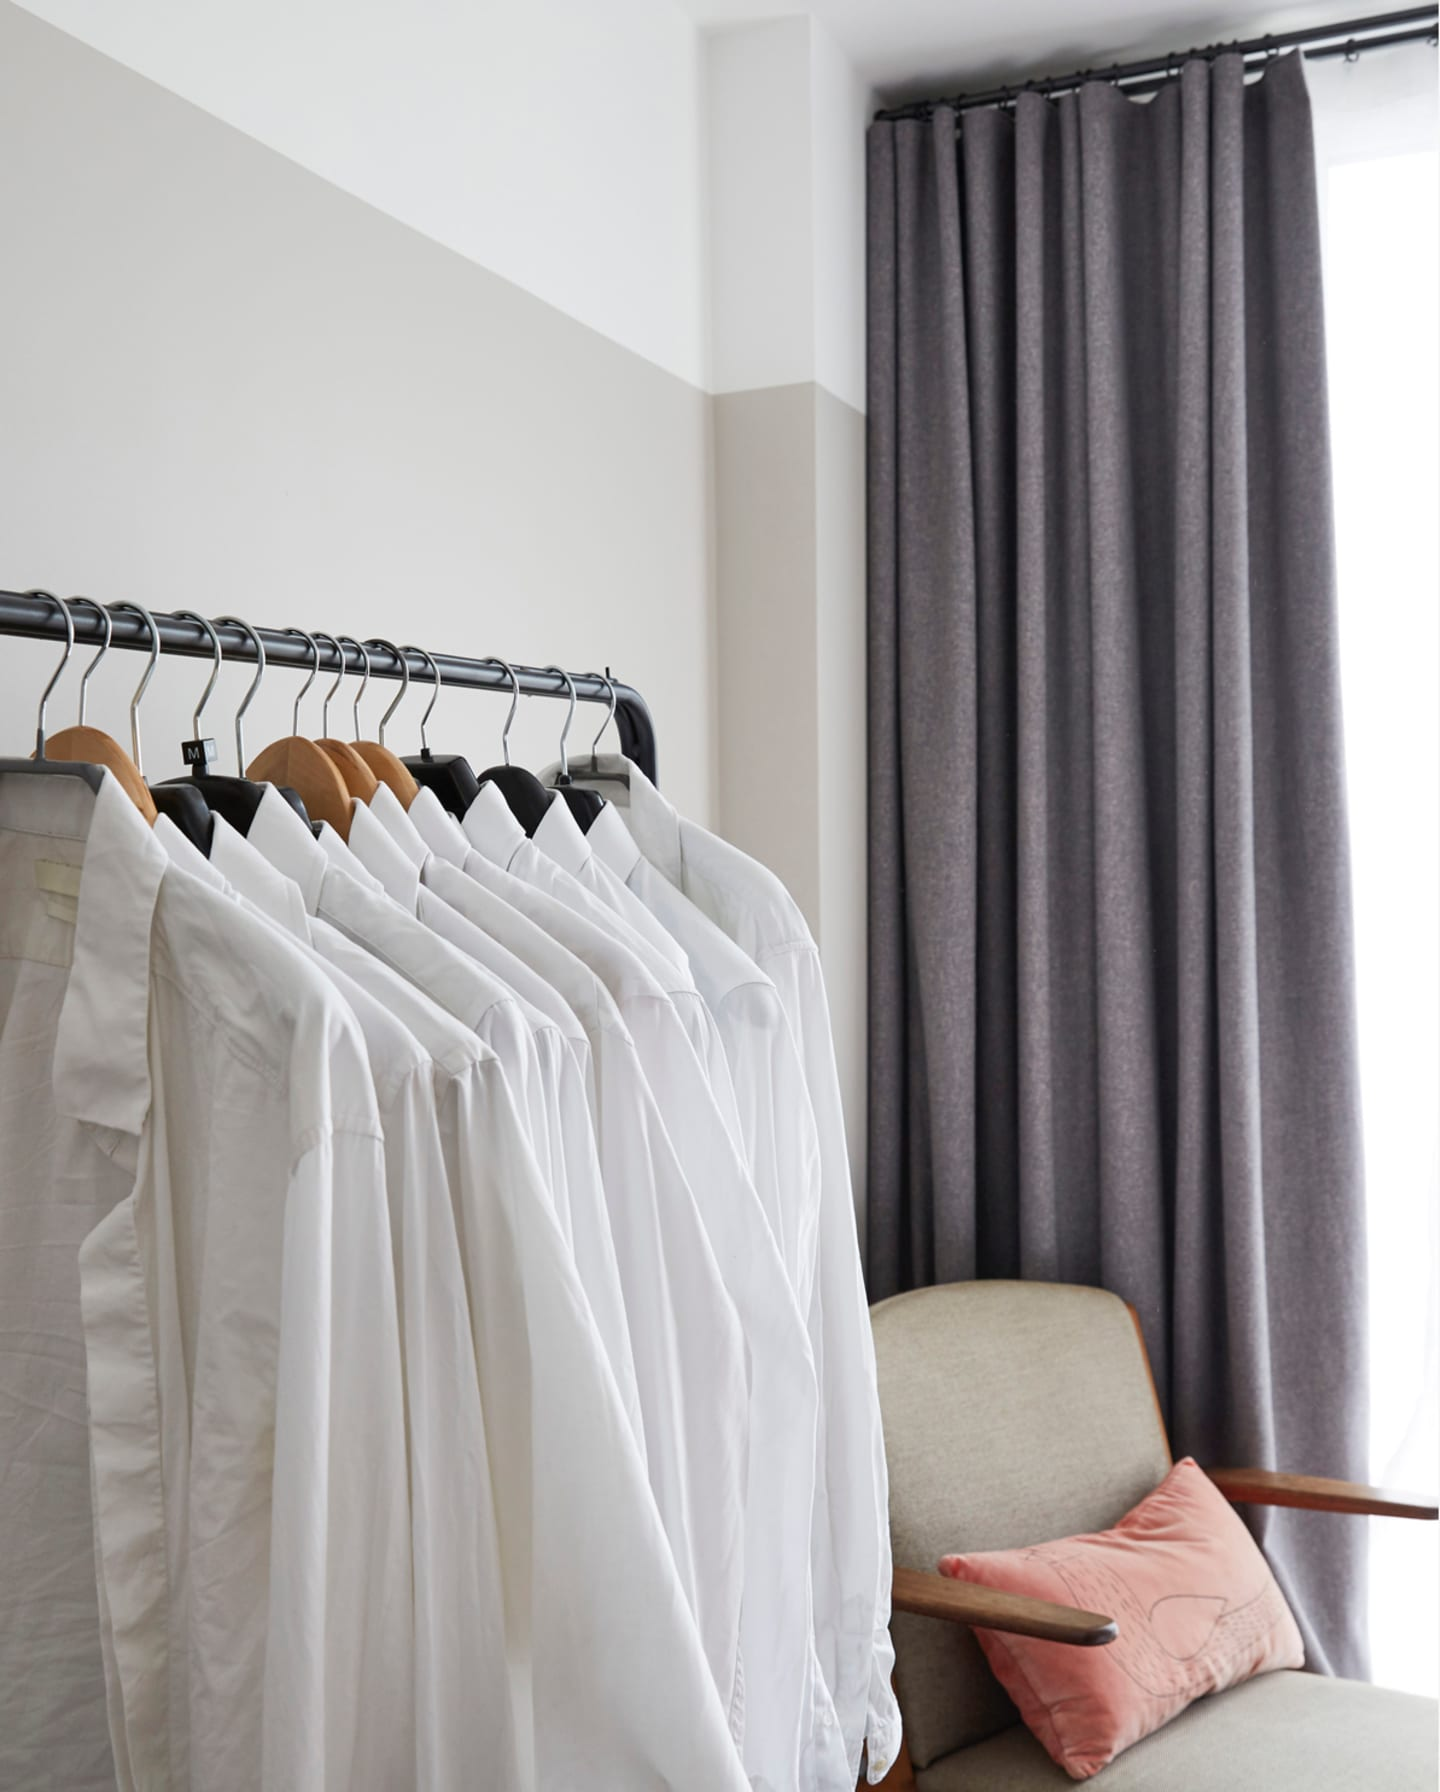 White shirts on a cloths rack, with grey fabric on the background.